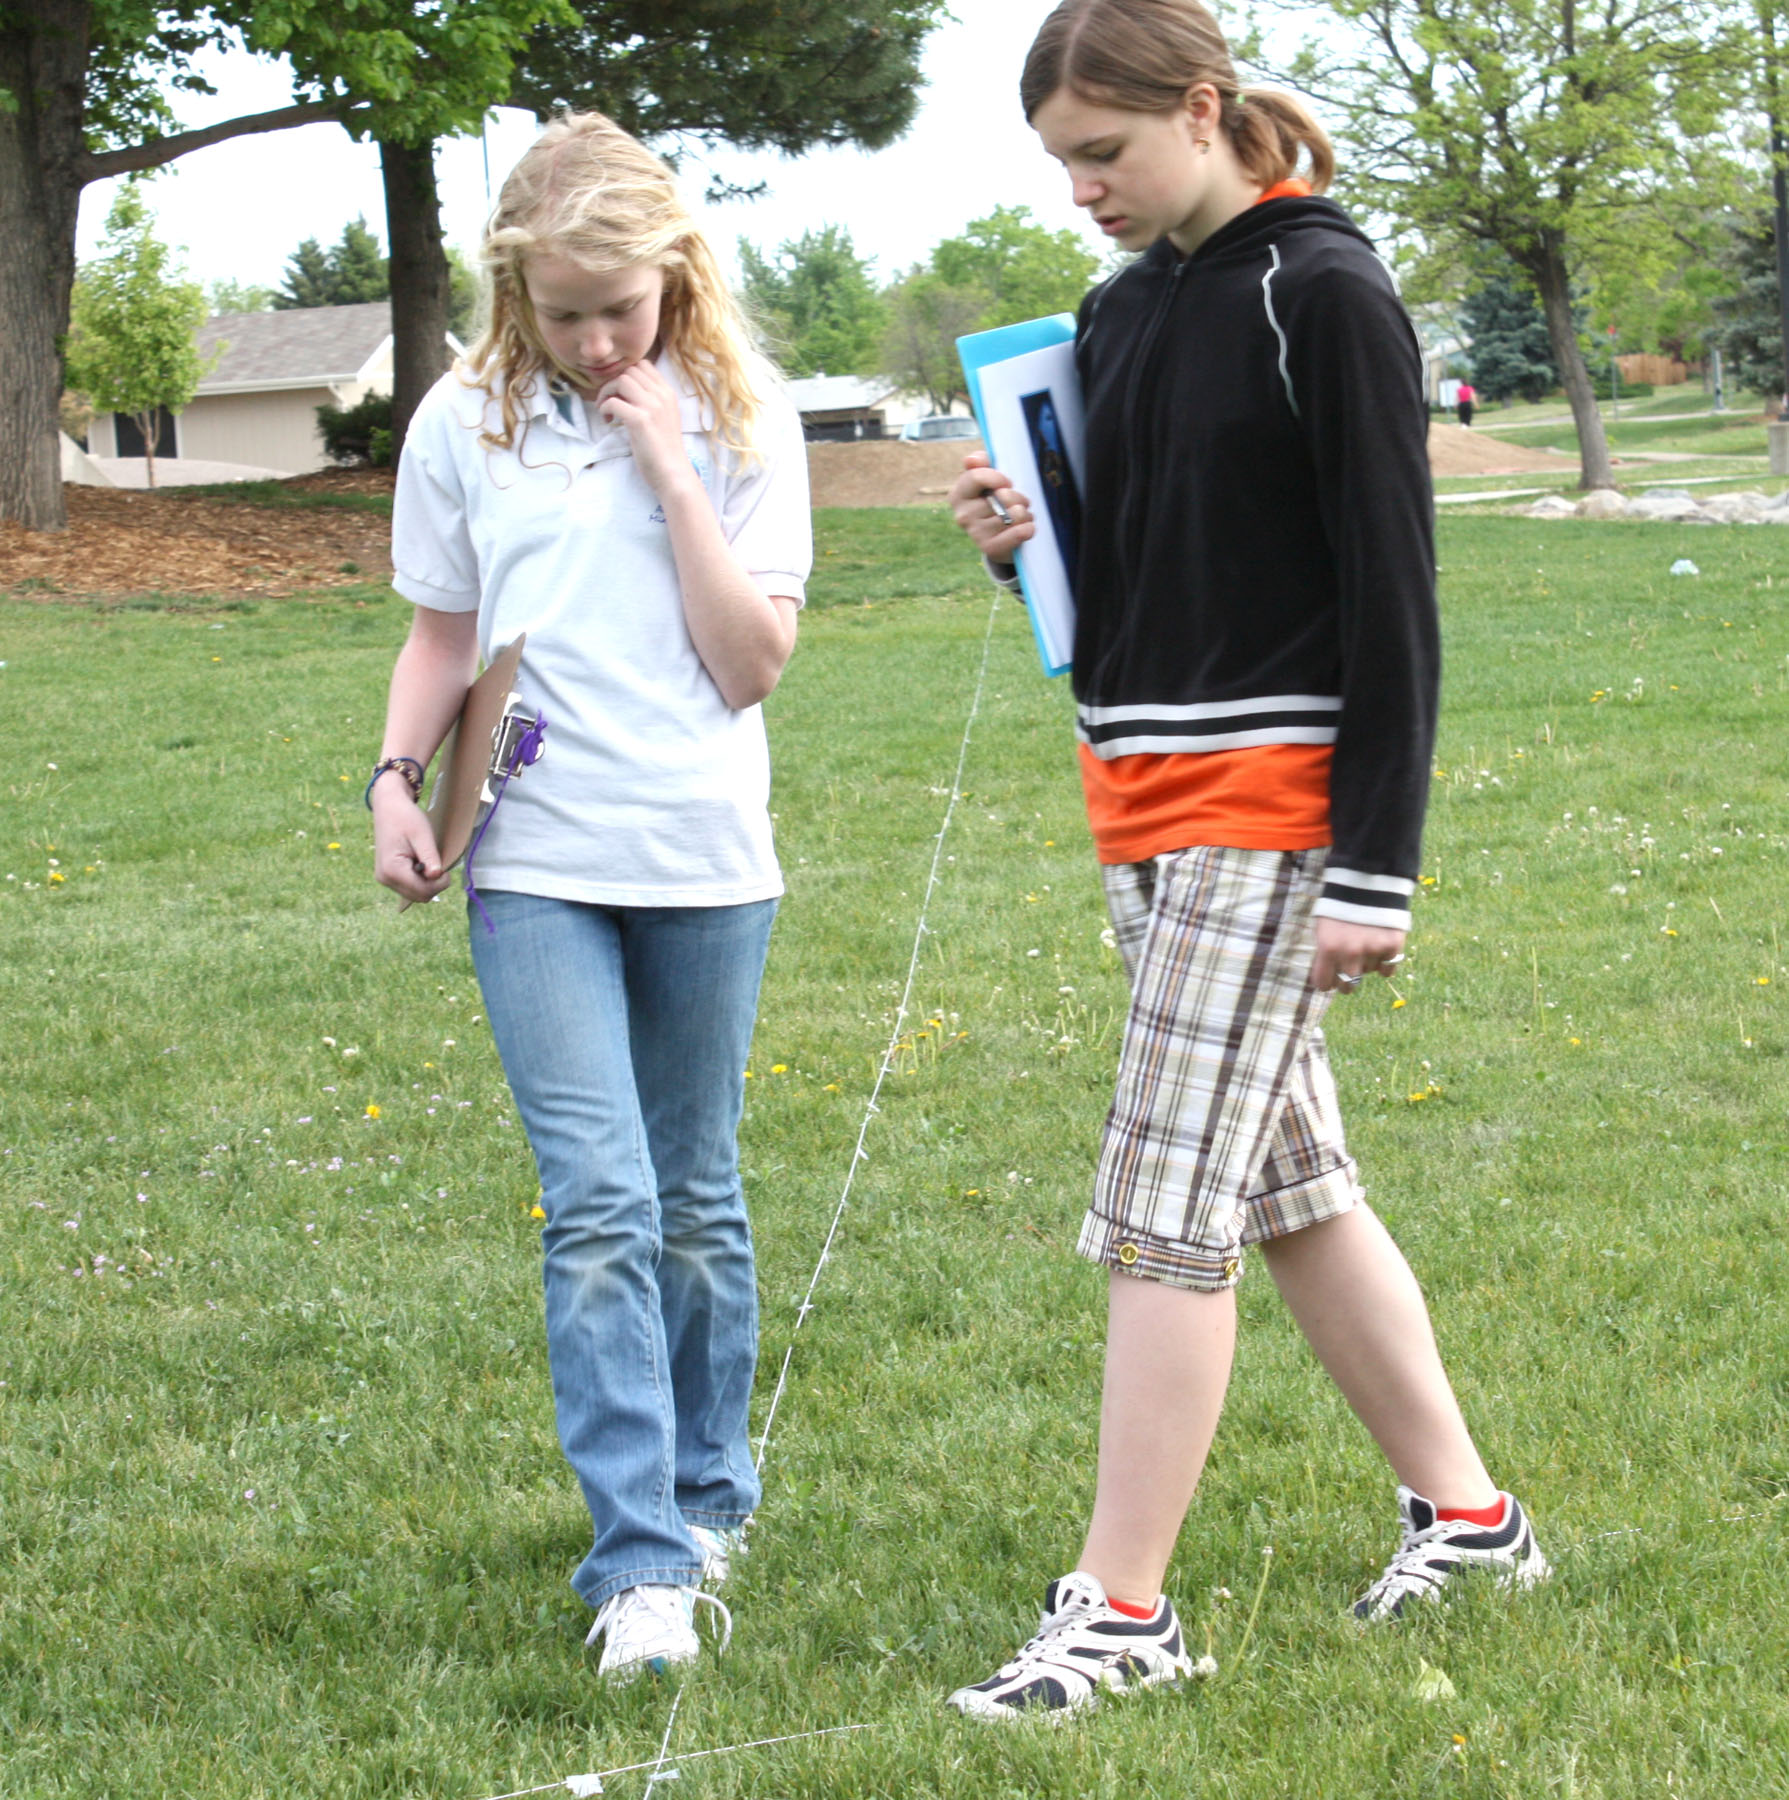 Students at Aurora Hills Middle School (CO) Participate in Extreme Navigation